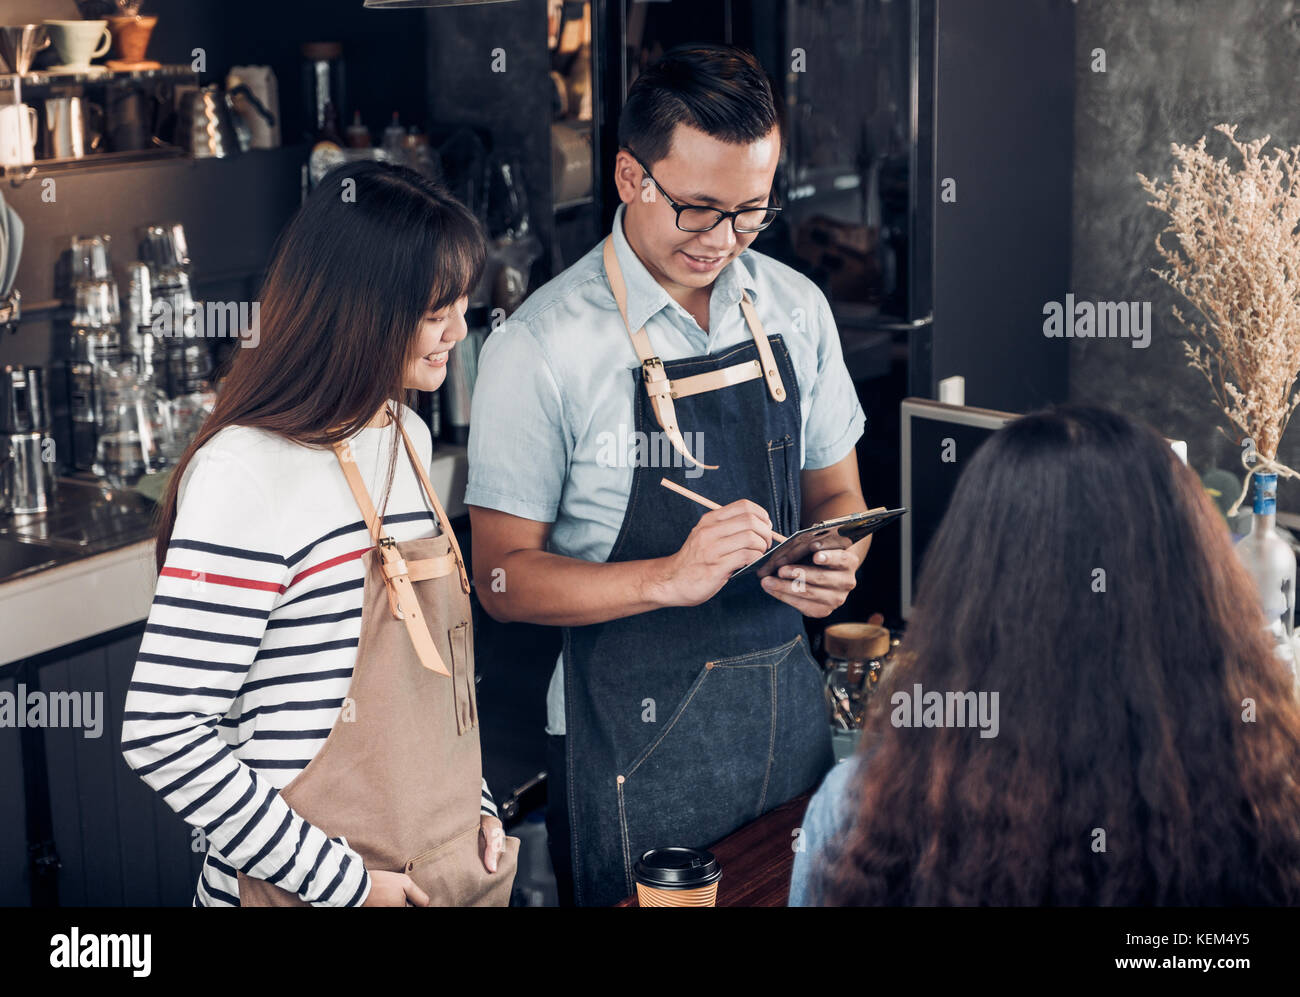 Asia Barista waiter take order from customer in coffee shop,Two cafe owner writing drink order at counter bar,Food - Stock Image